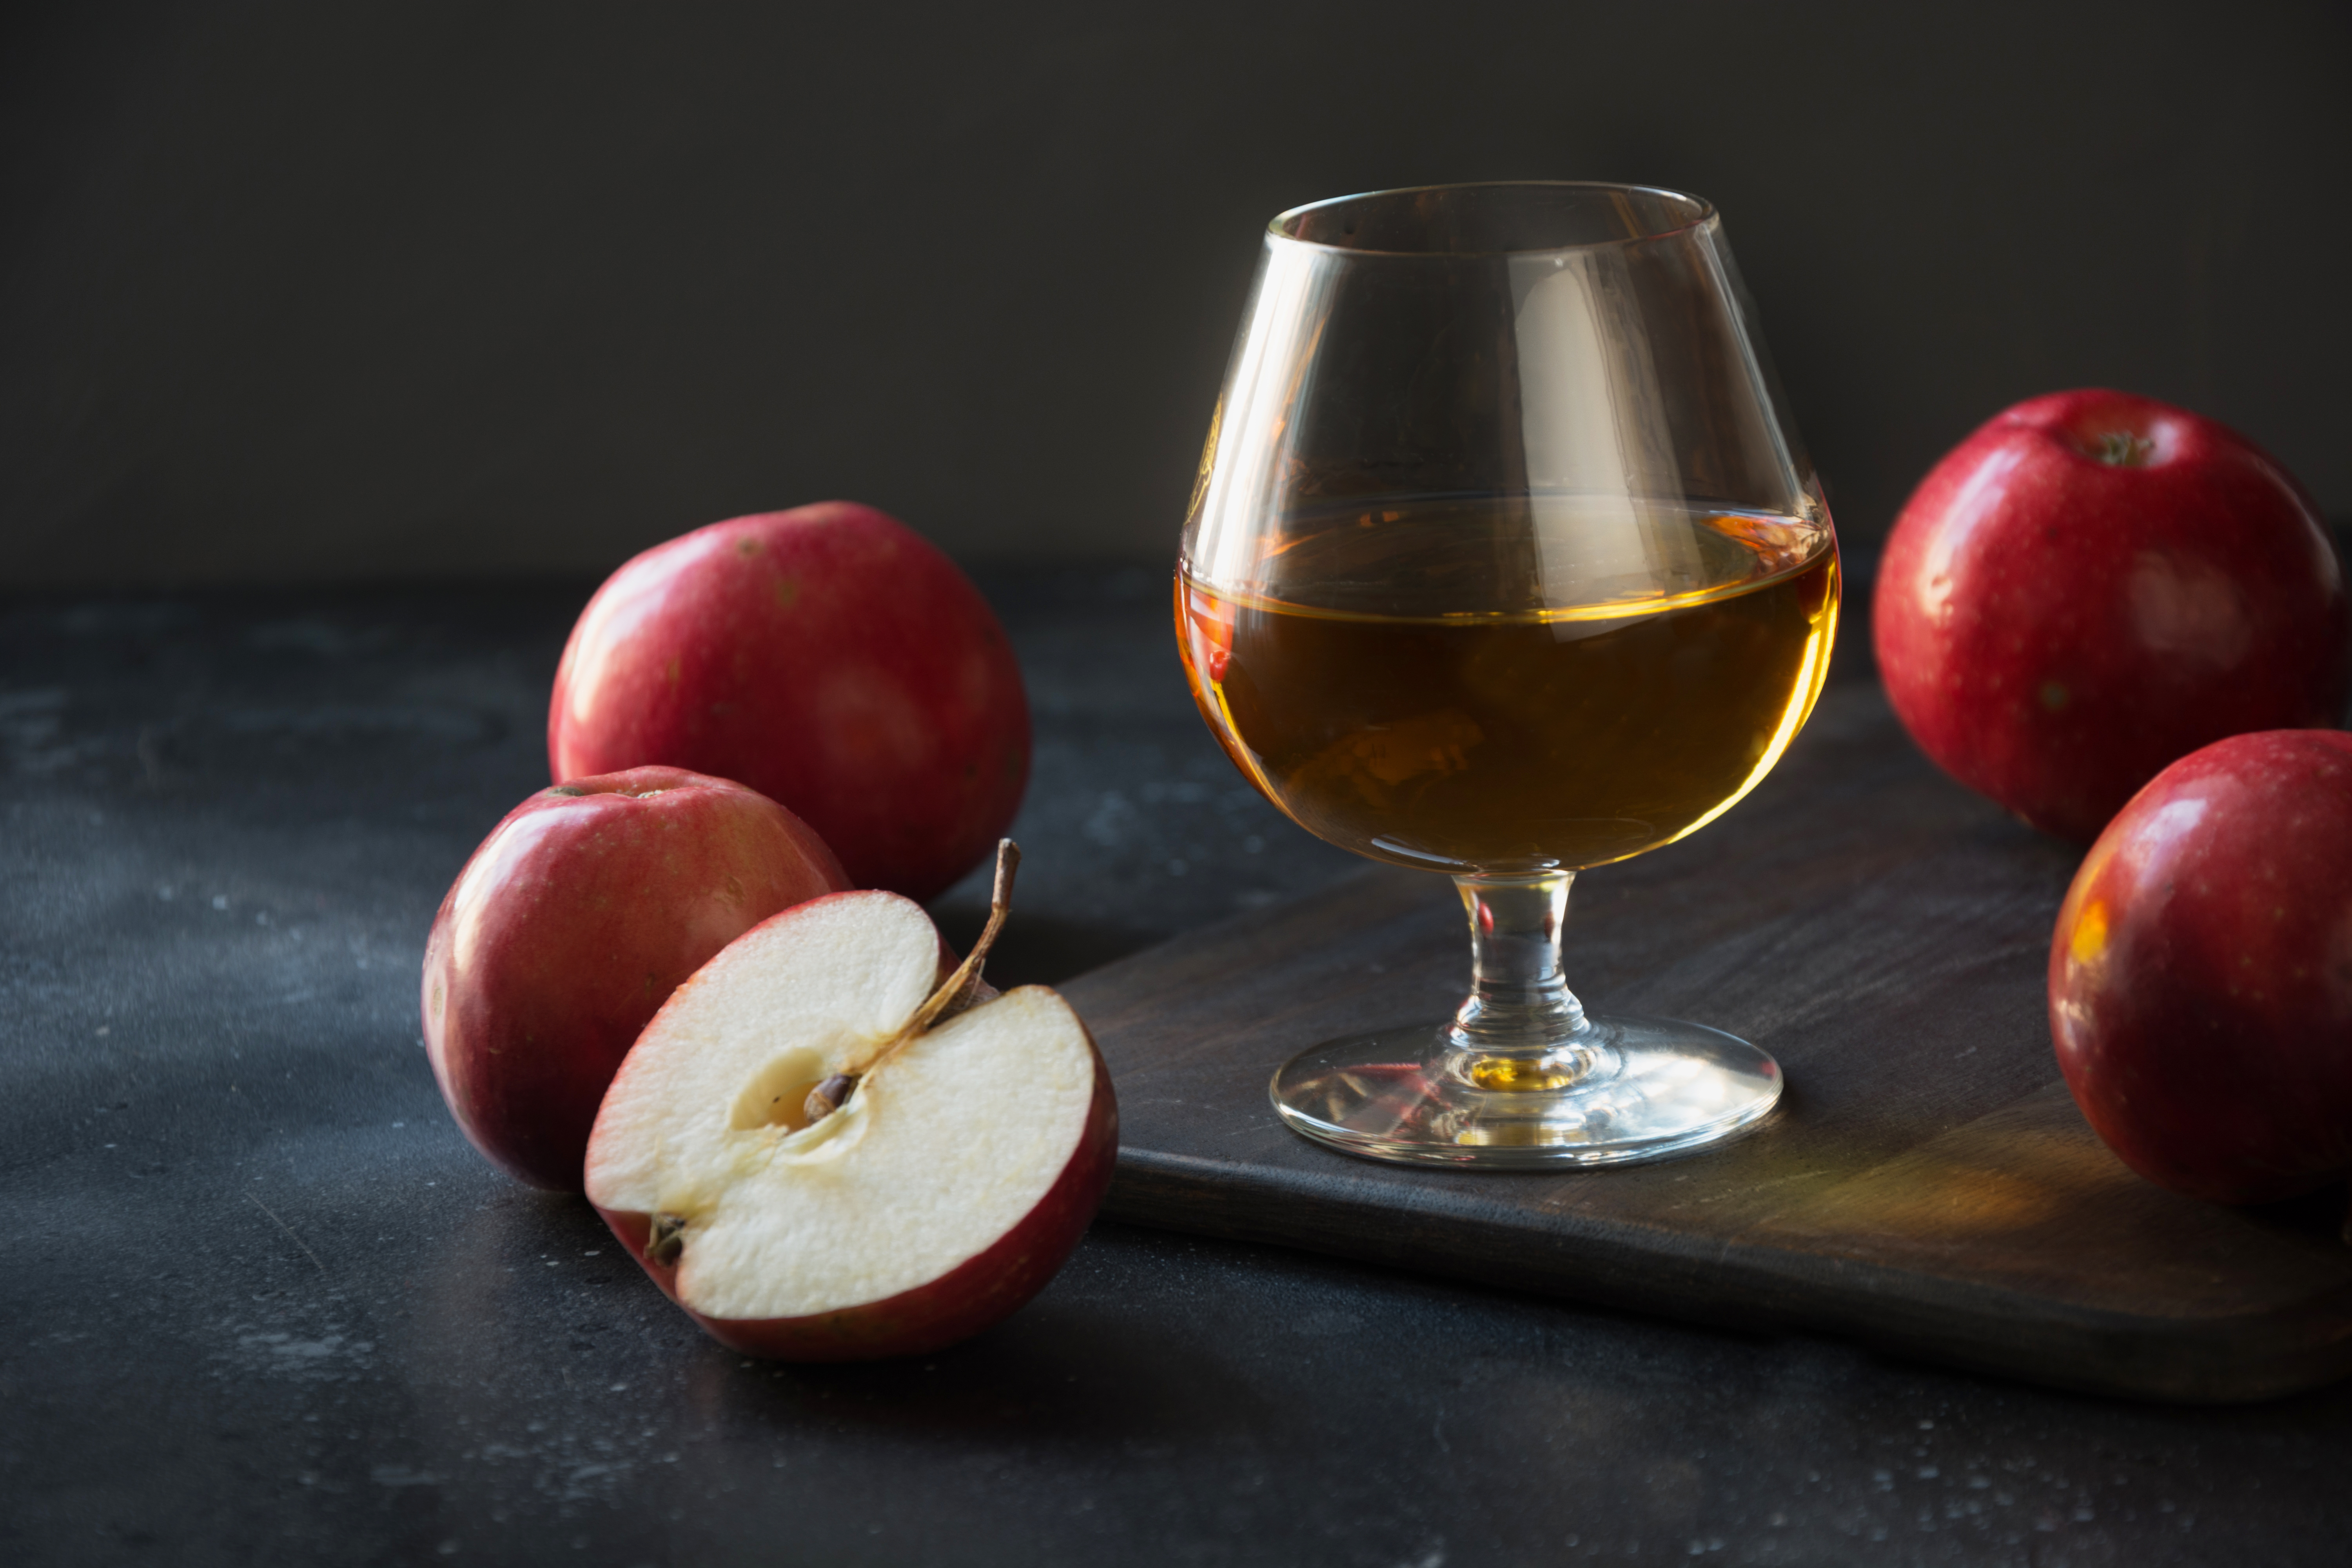 Glass,With,Calvados,Brandy,And,Red,Apples,On,Black.,Close